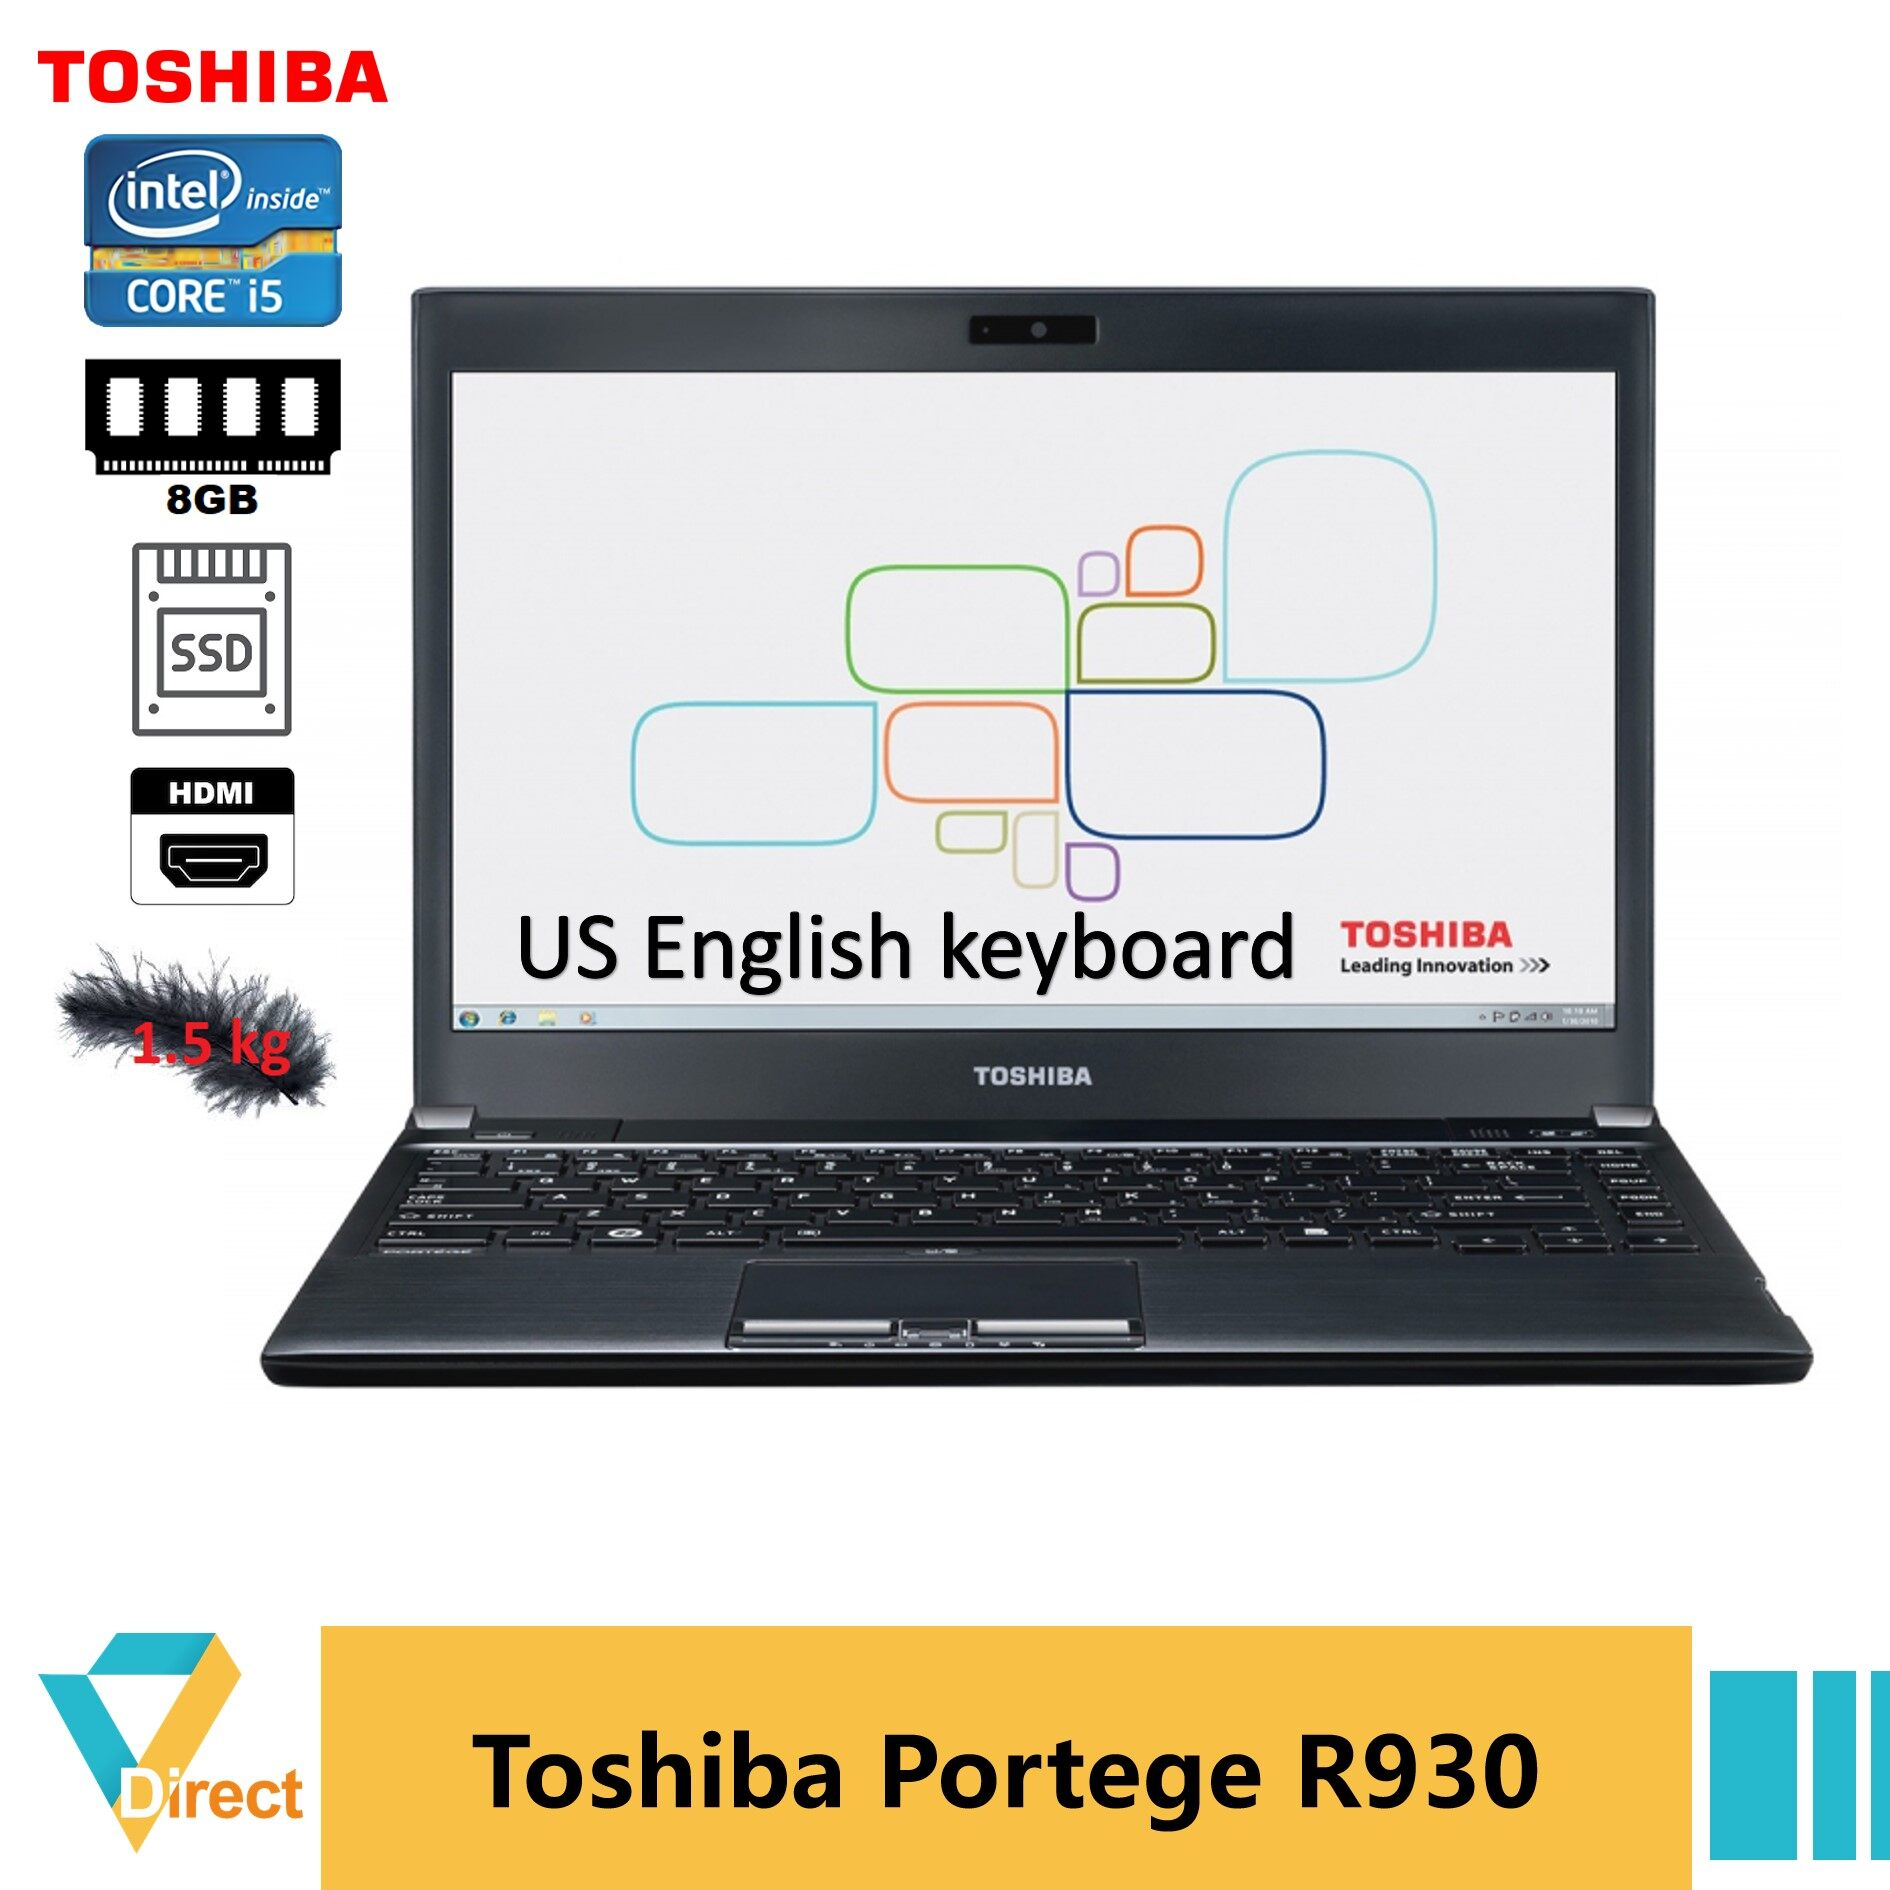 US keyboard HDMI 1.5 kg Up 8GB RAM NEW 240GB SSD Core i5 Toshiba Portege R930 laptop PC Ultrabook fully refurbished notebook Malaysia